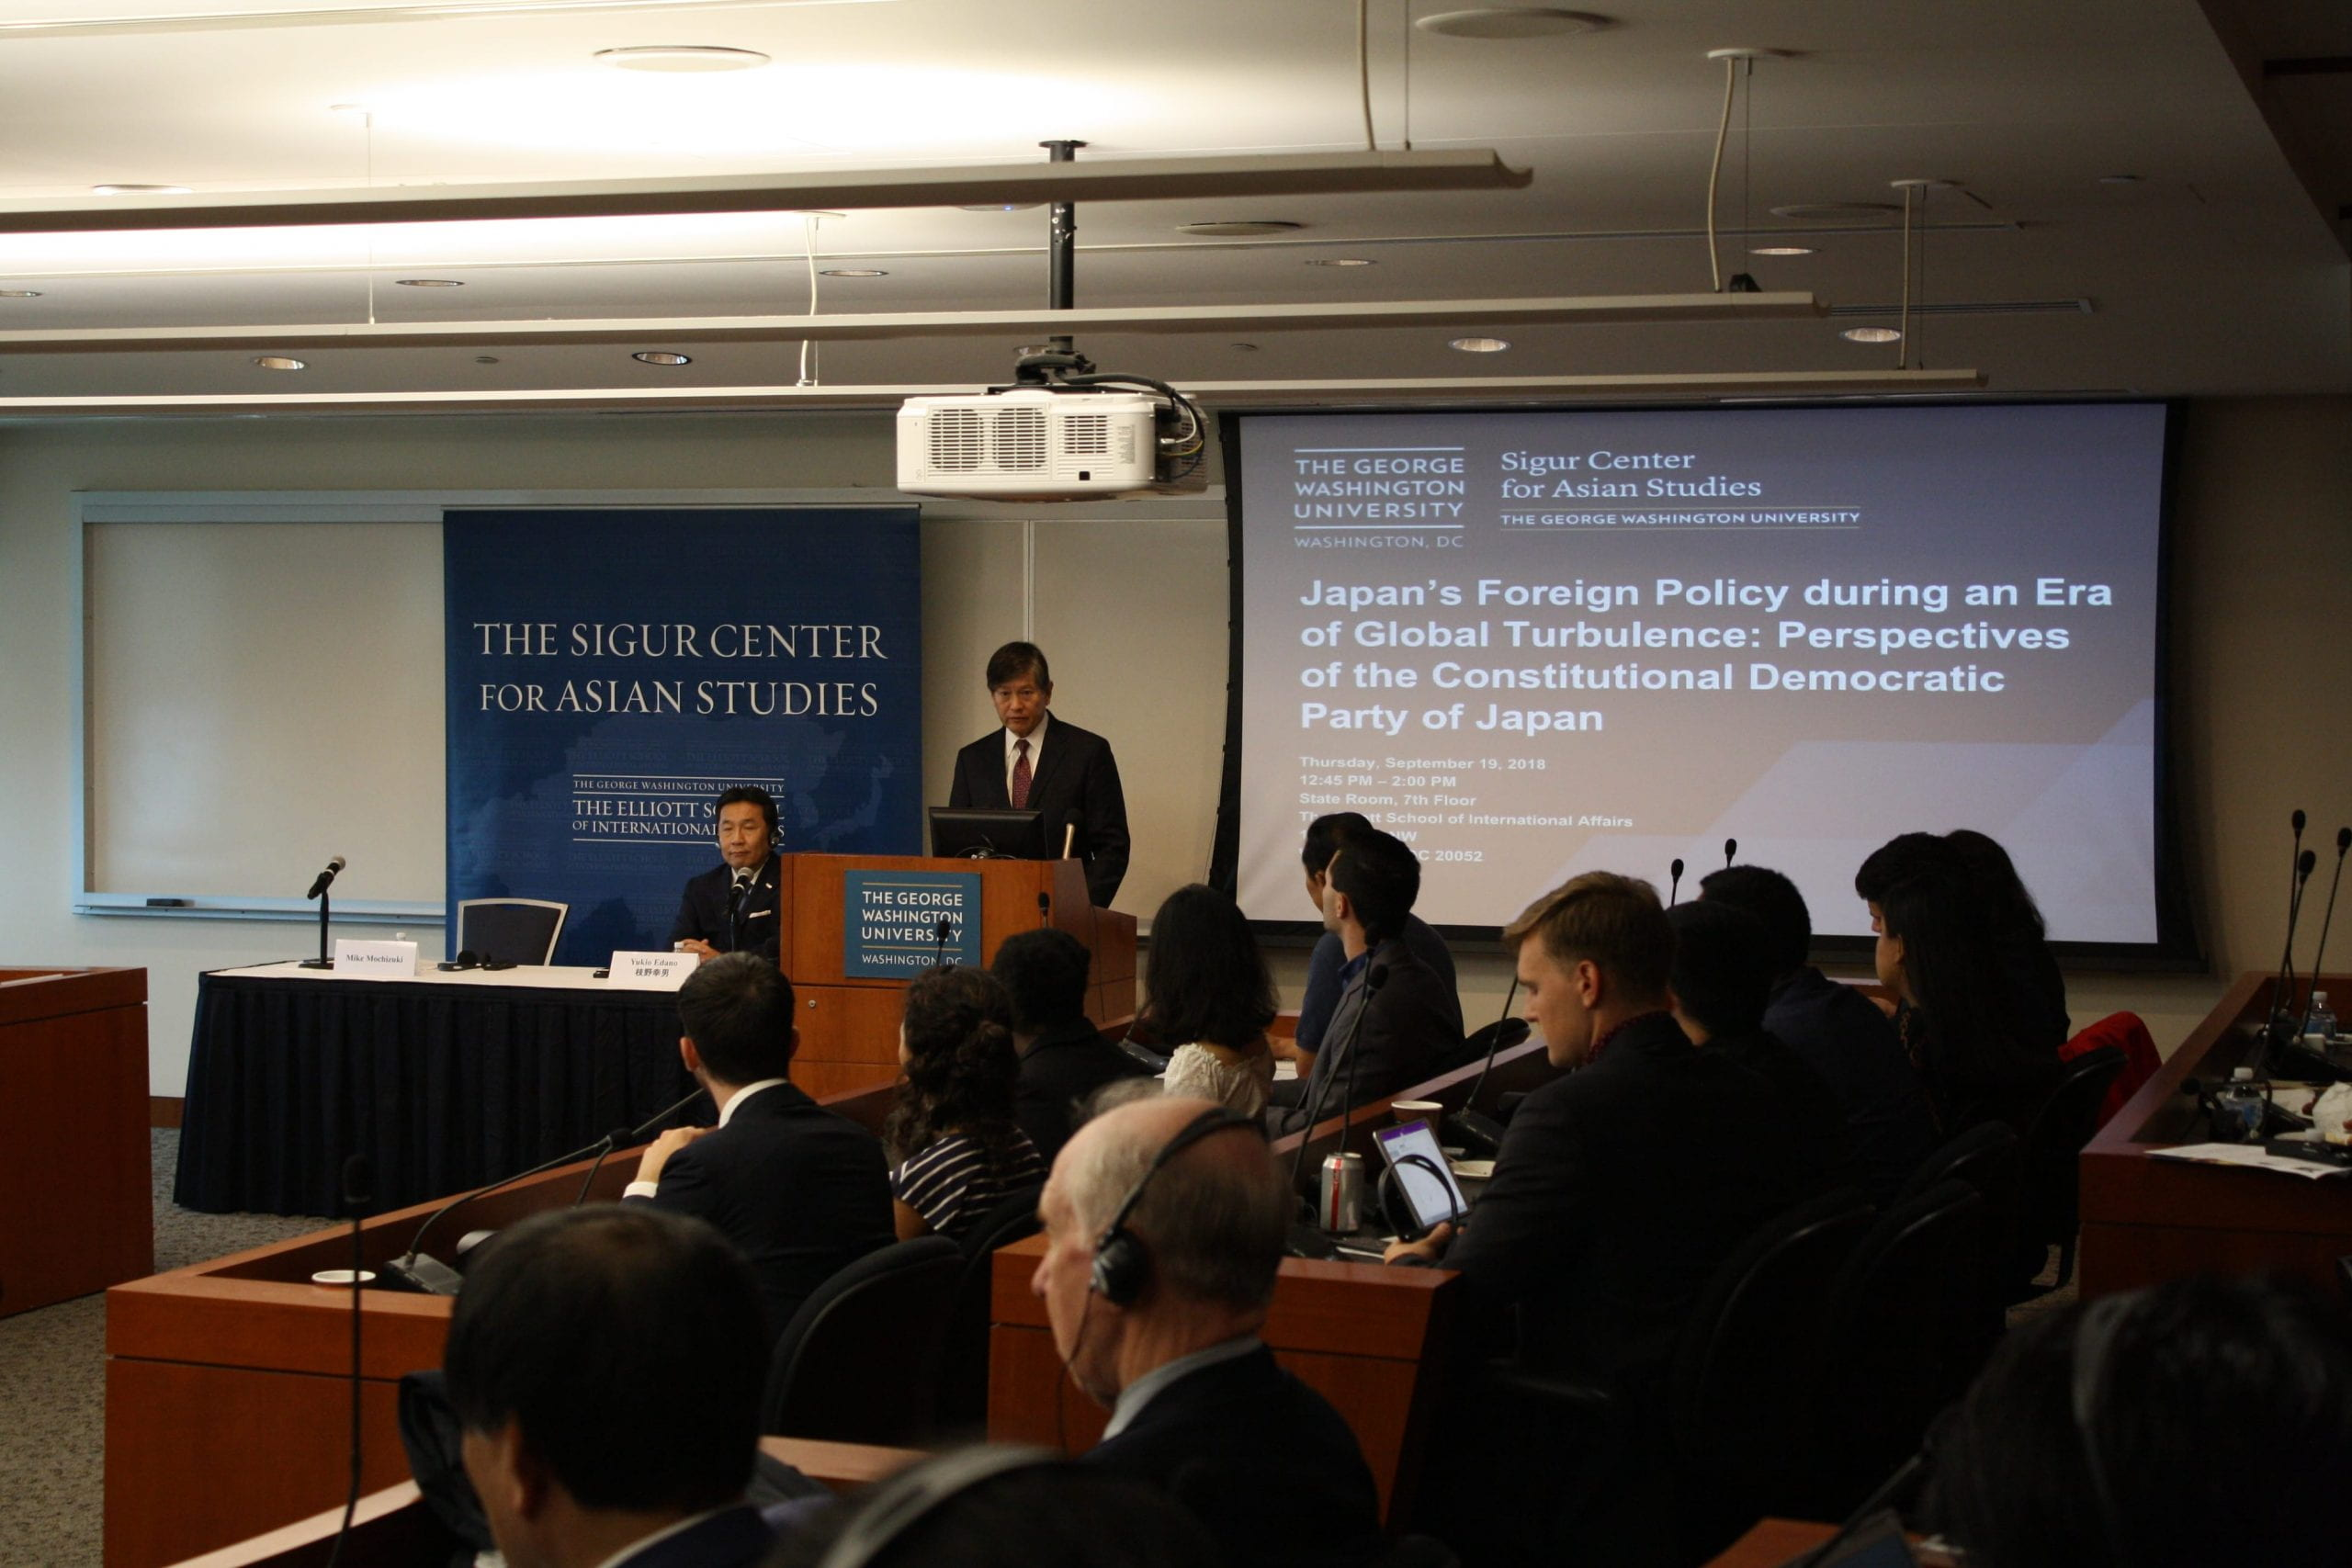 """Professor Mike Mochizuki introducing CDP leader Yukio Edano in a special public seminar on """"Japan's Foreign Policy during an Era of Global Turbulence: Perspectives of the Constitutional Democratic Party of Japan"""" held on September 13, 2018."""